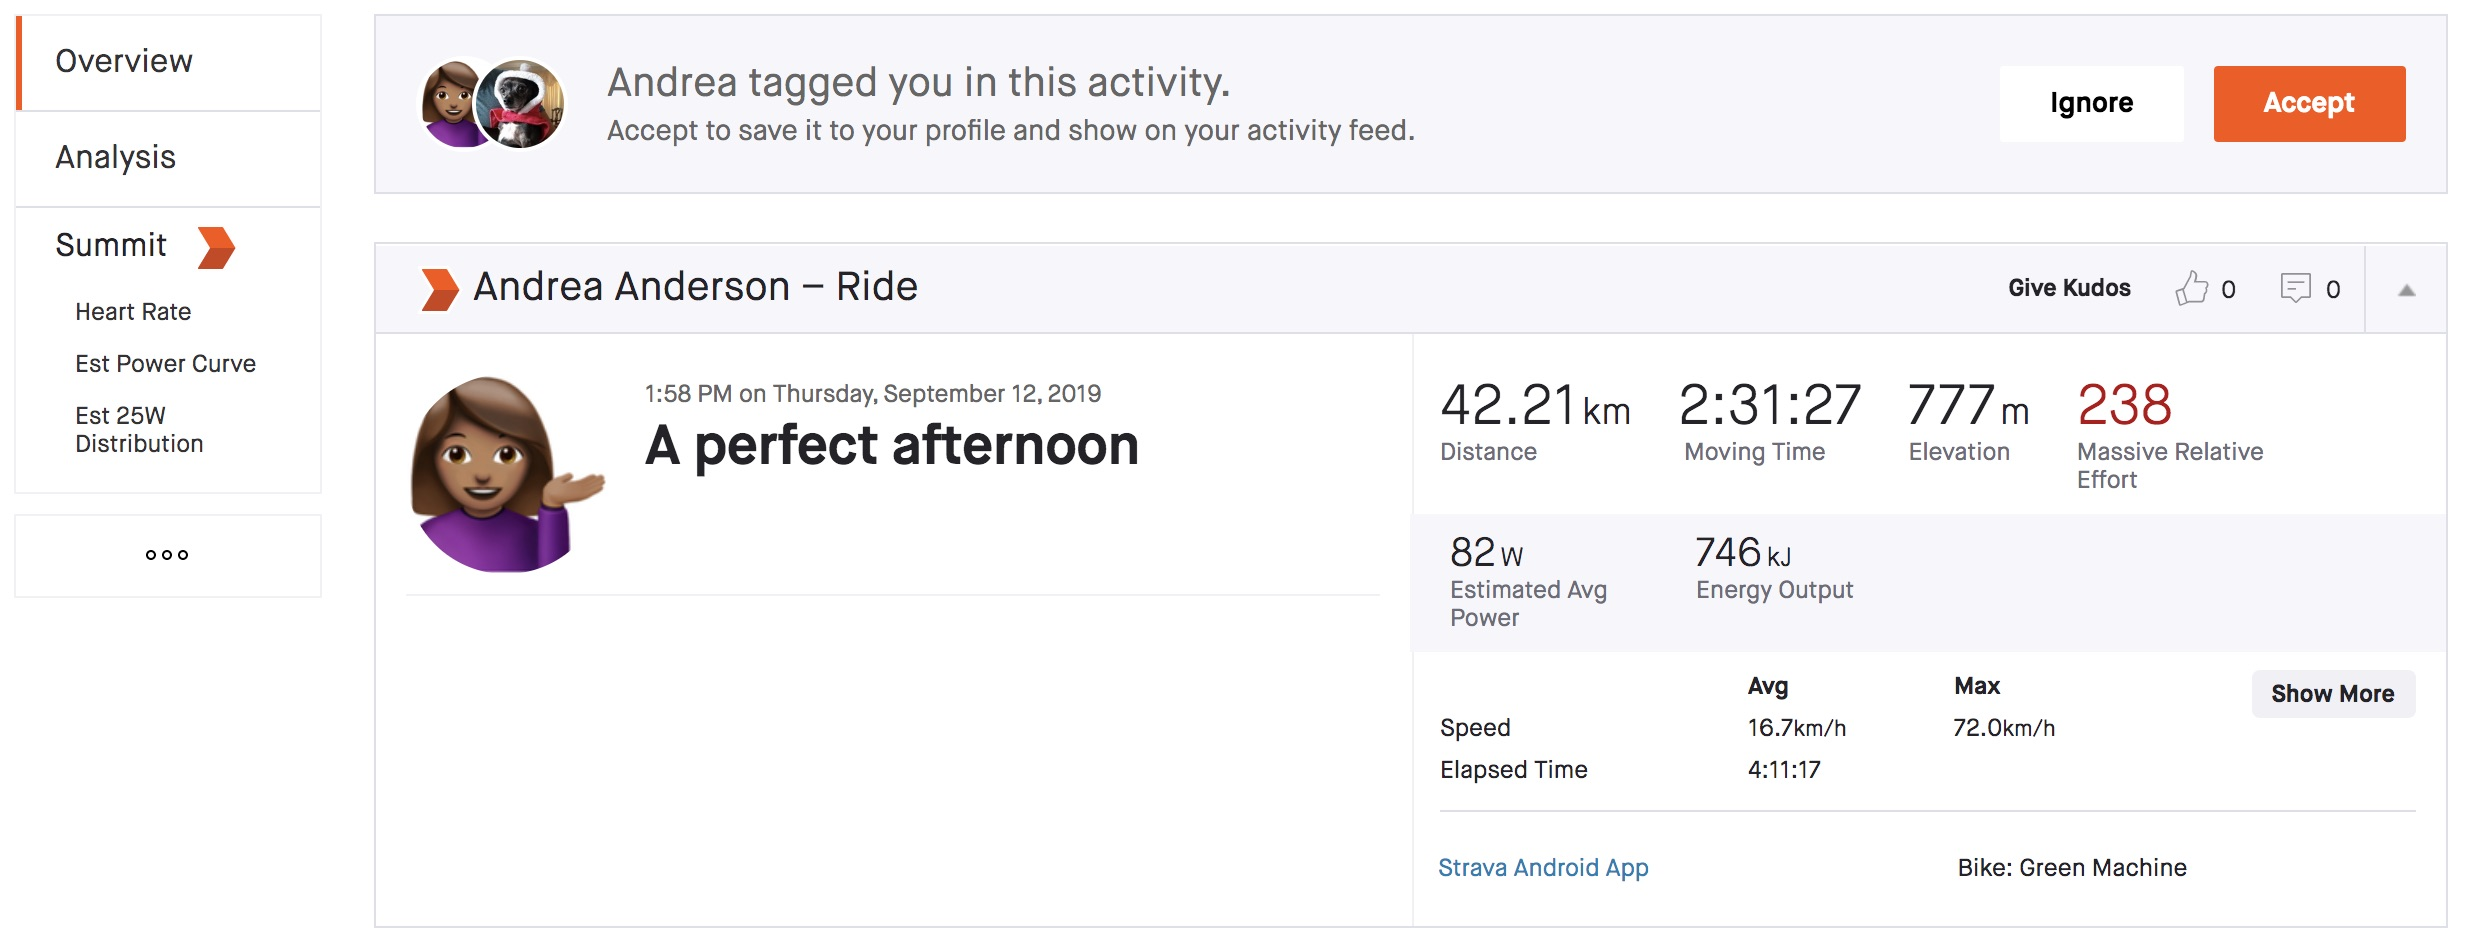 A_perfect_afternoon___Ride___Strava.jpg